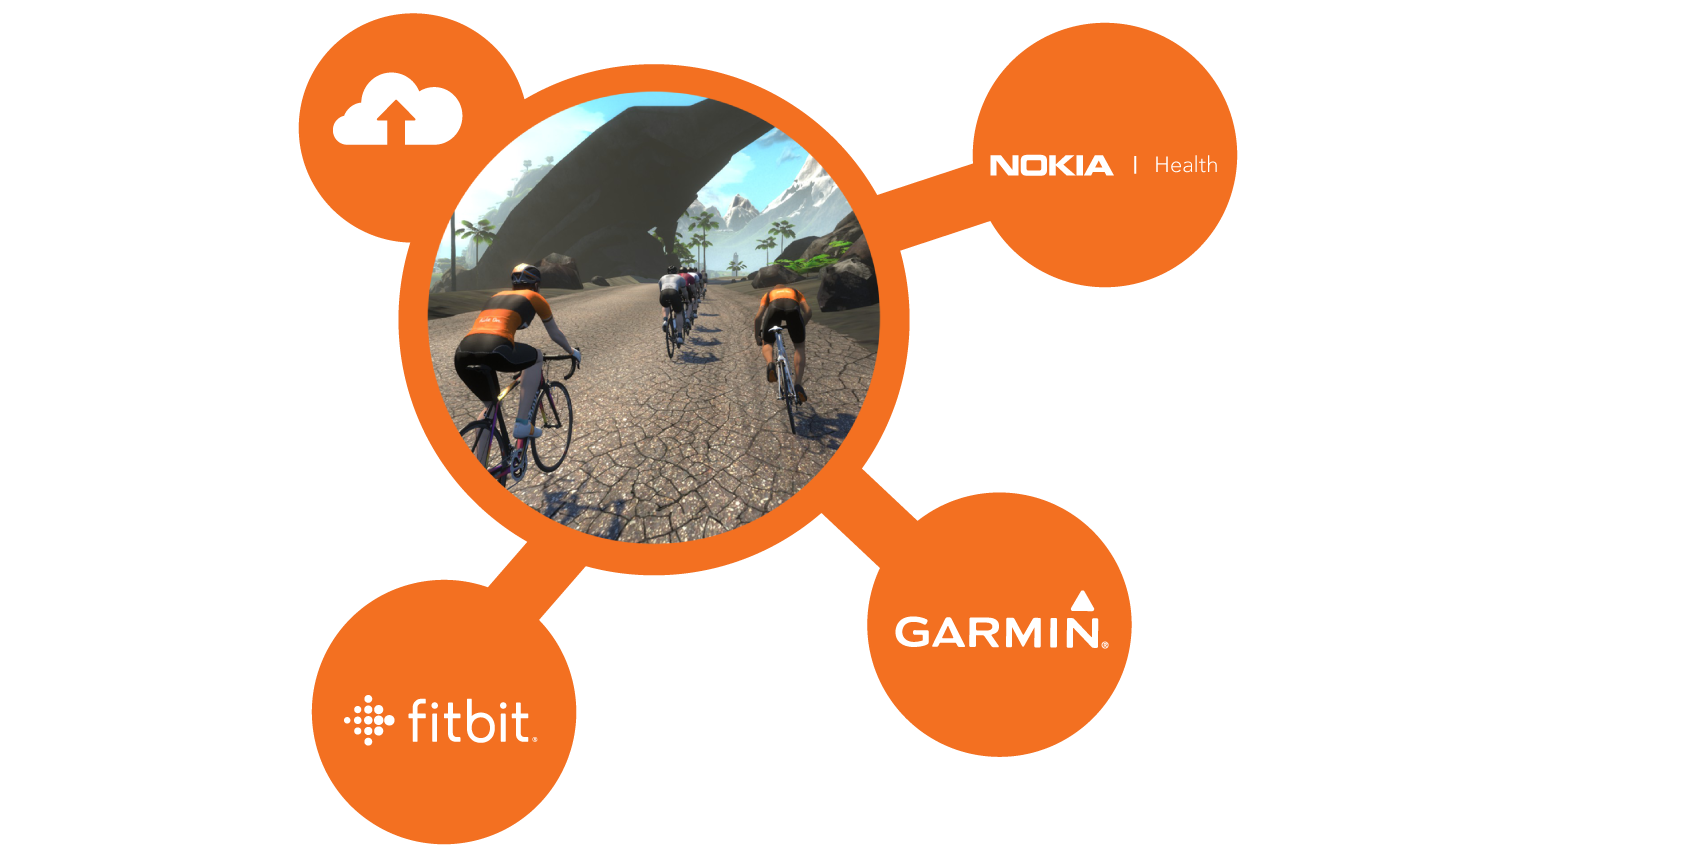 Integrating Zwift with Garmin, Fitbit, and Nokia Health | Zwift